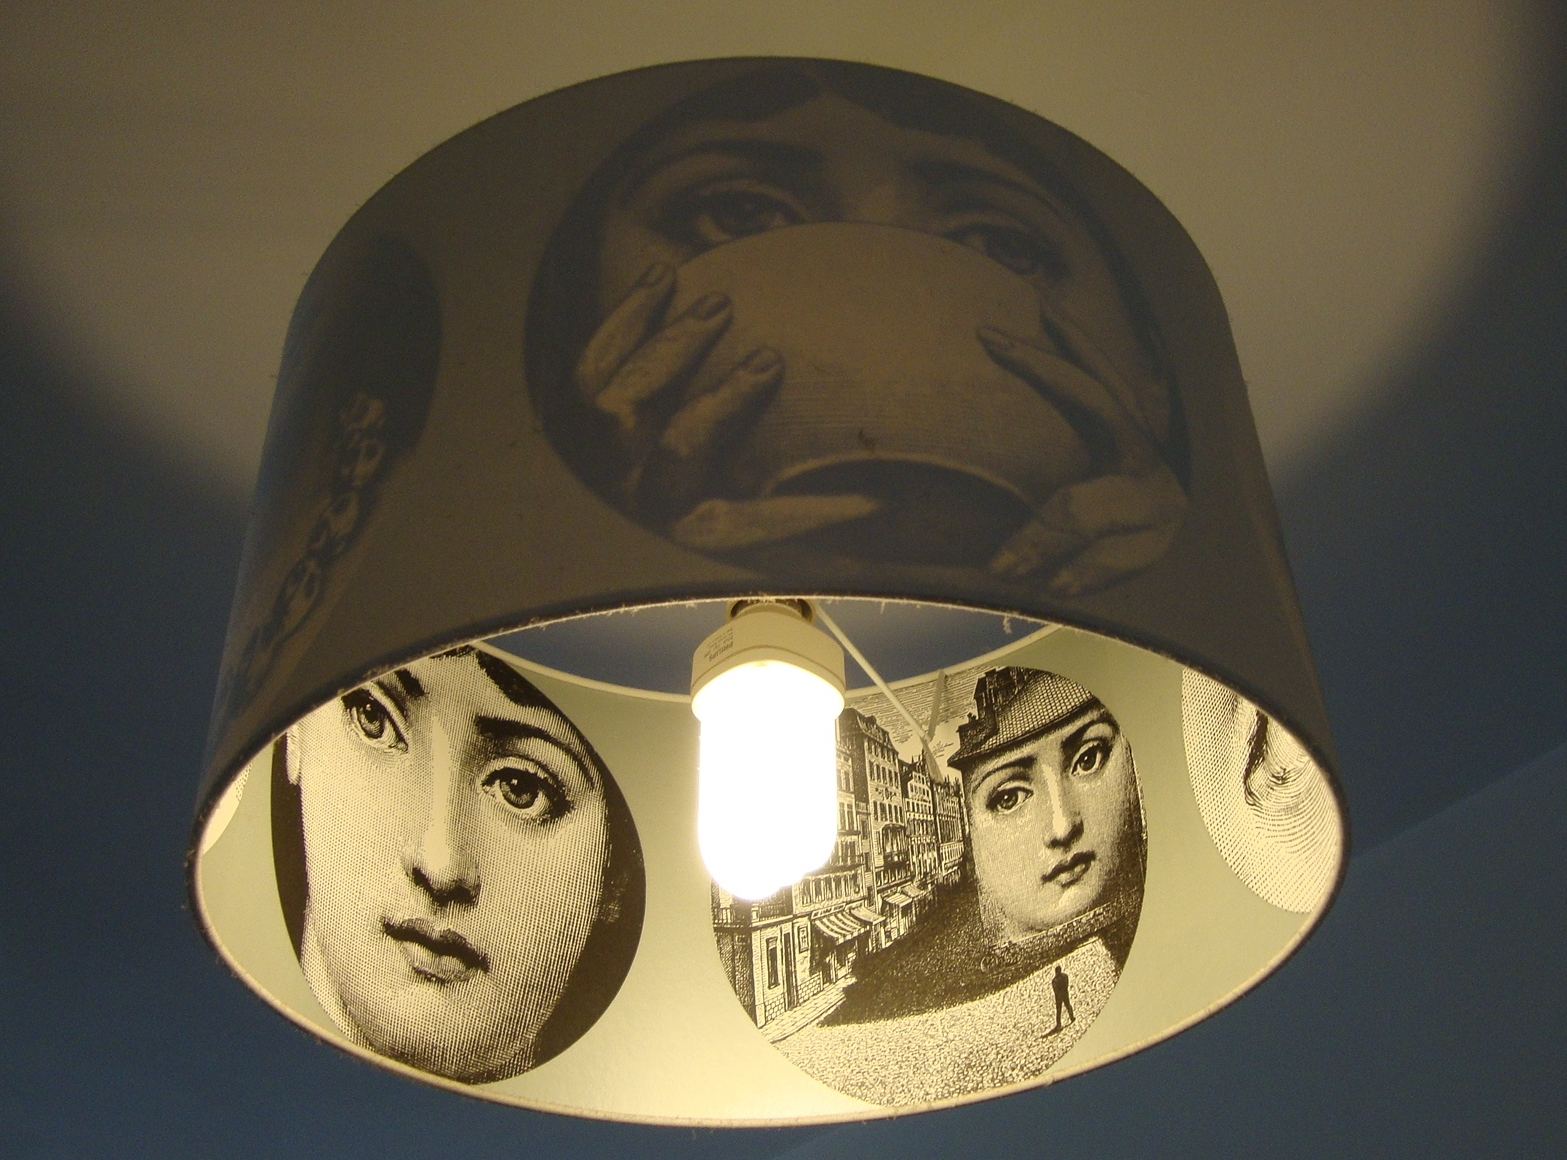 Fornasetti Face Wallpaper Piero Fornasetti Design Crush Godard Girl The